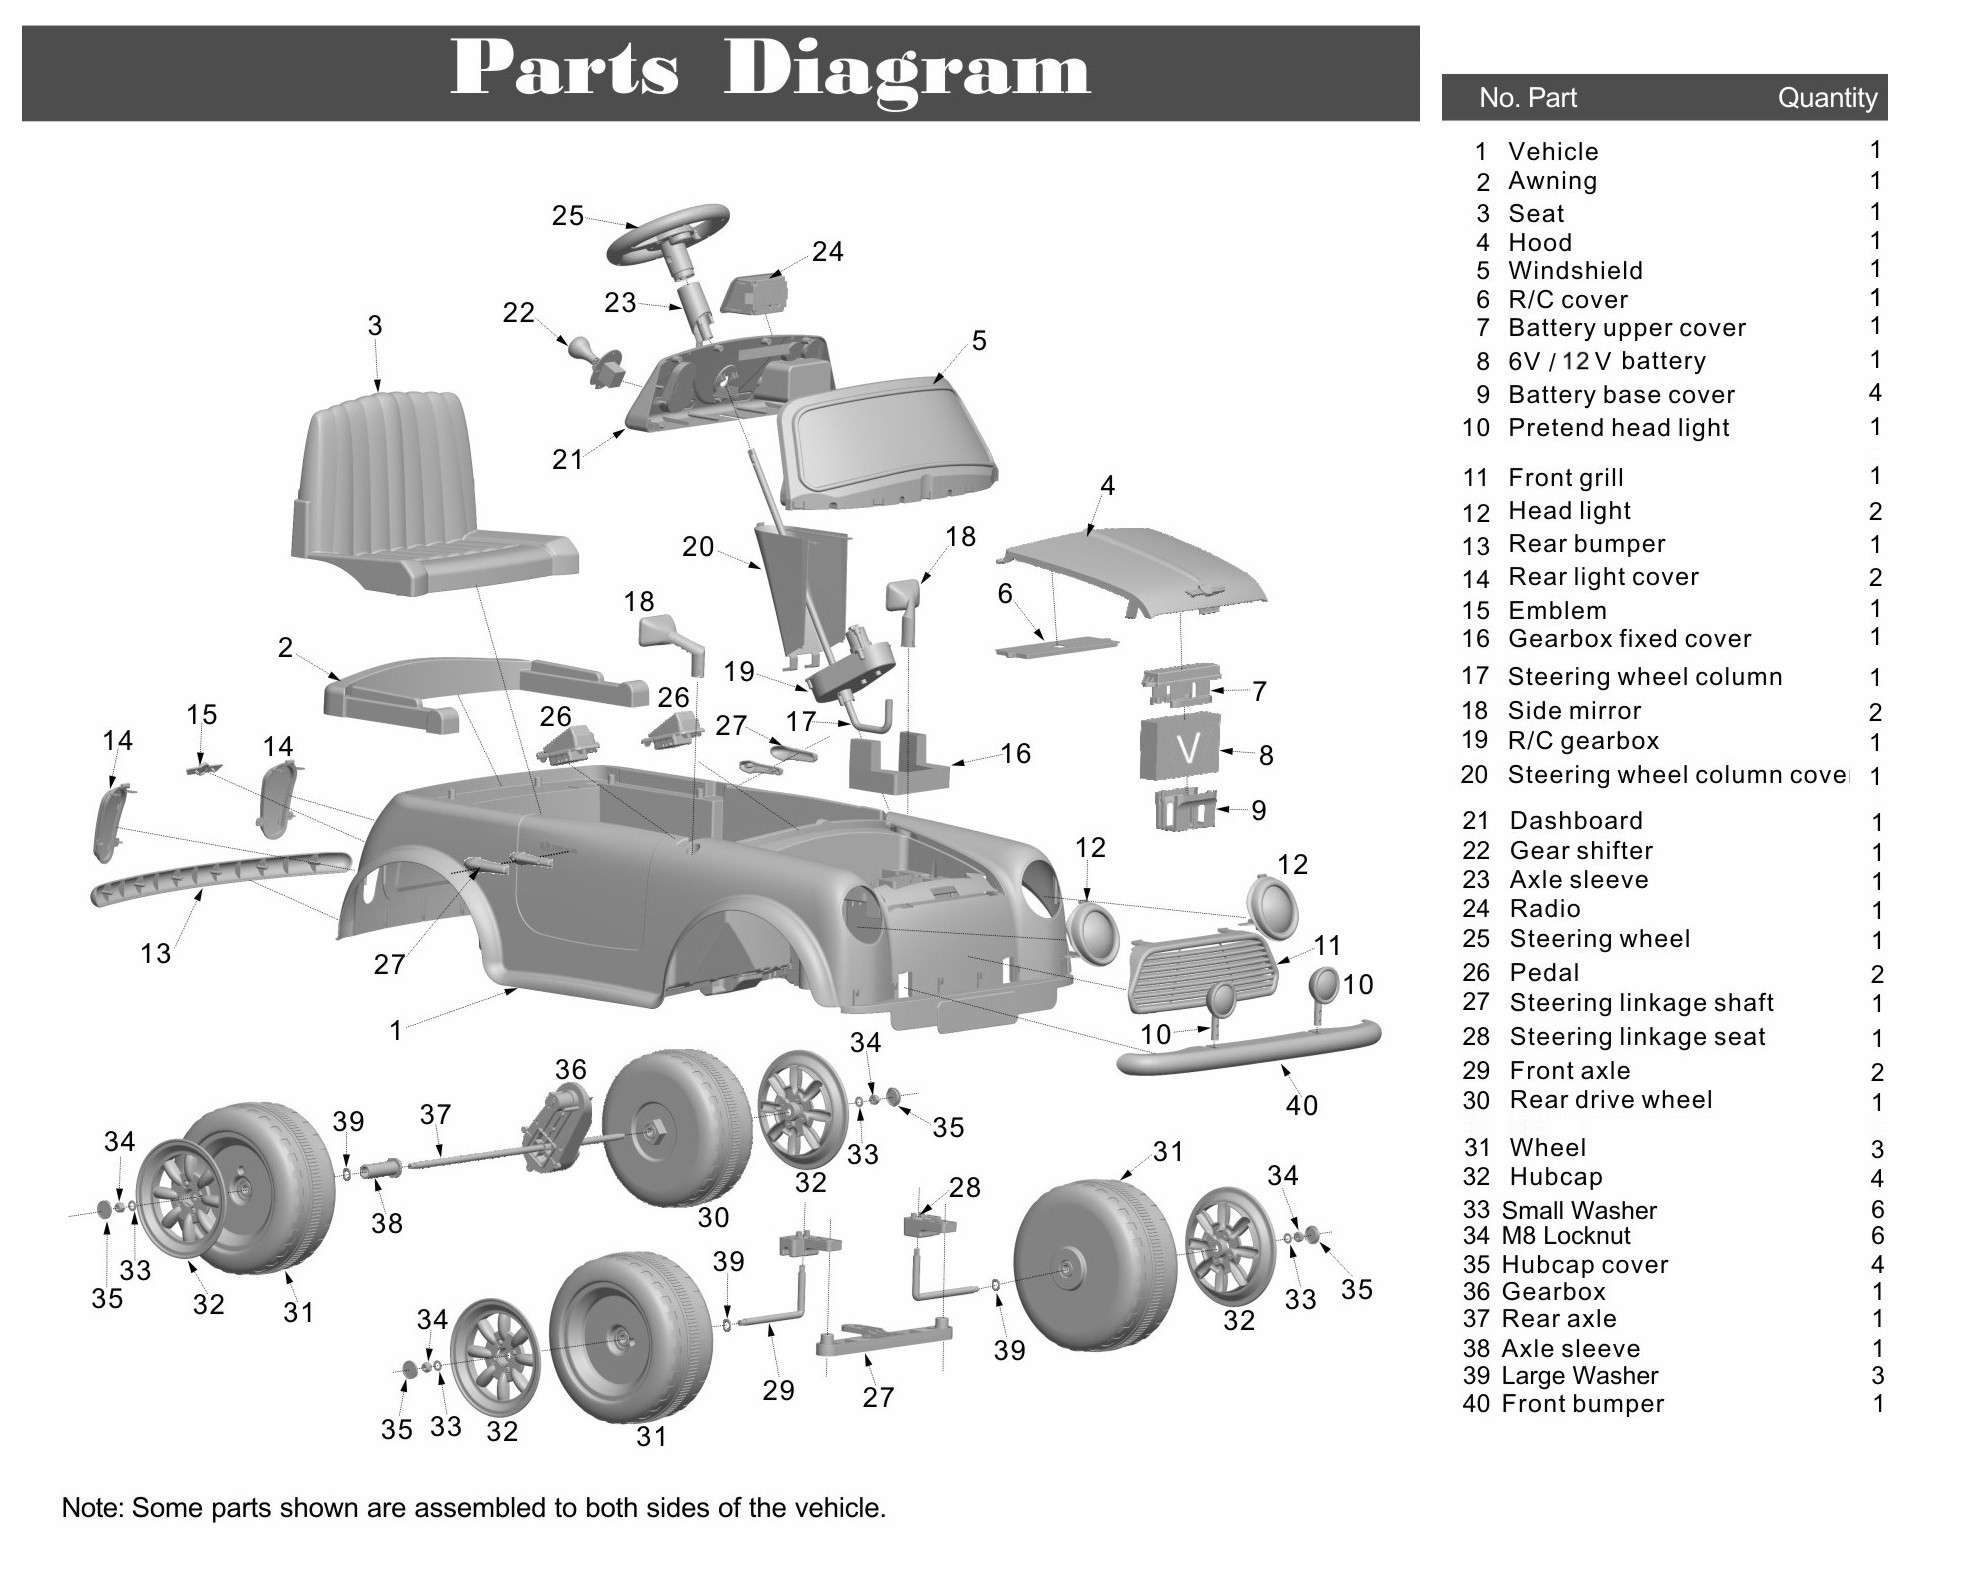 Wiring Diagram For Mini Cooper : Mini cooper radio wiring diagram nissan z